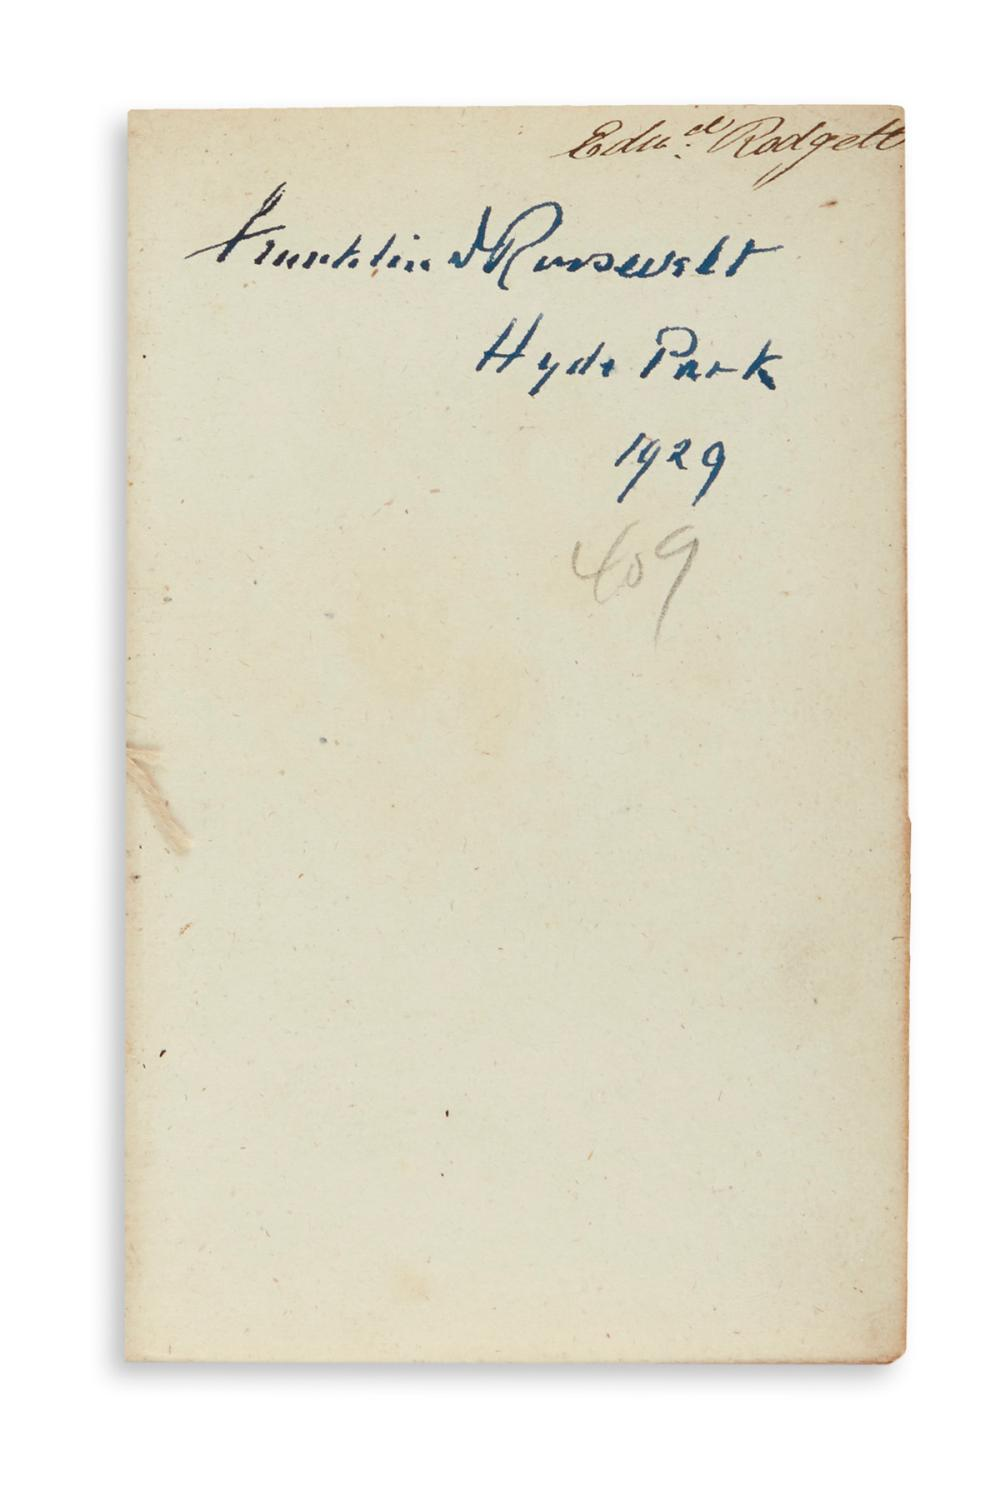 ROOSEVELT, FRANKLIN D. Homer and Alexander Pope. The Odyssey. Signed and dated by Roosevelt on a front blank.